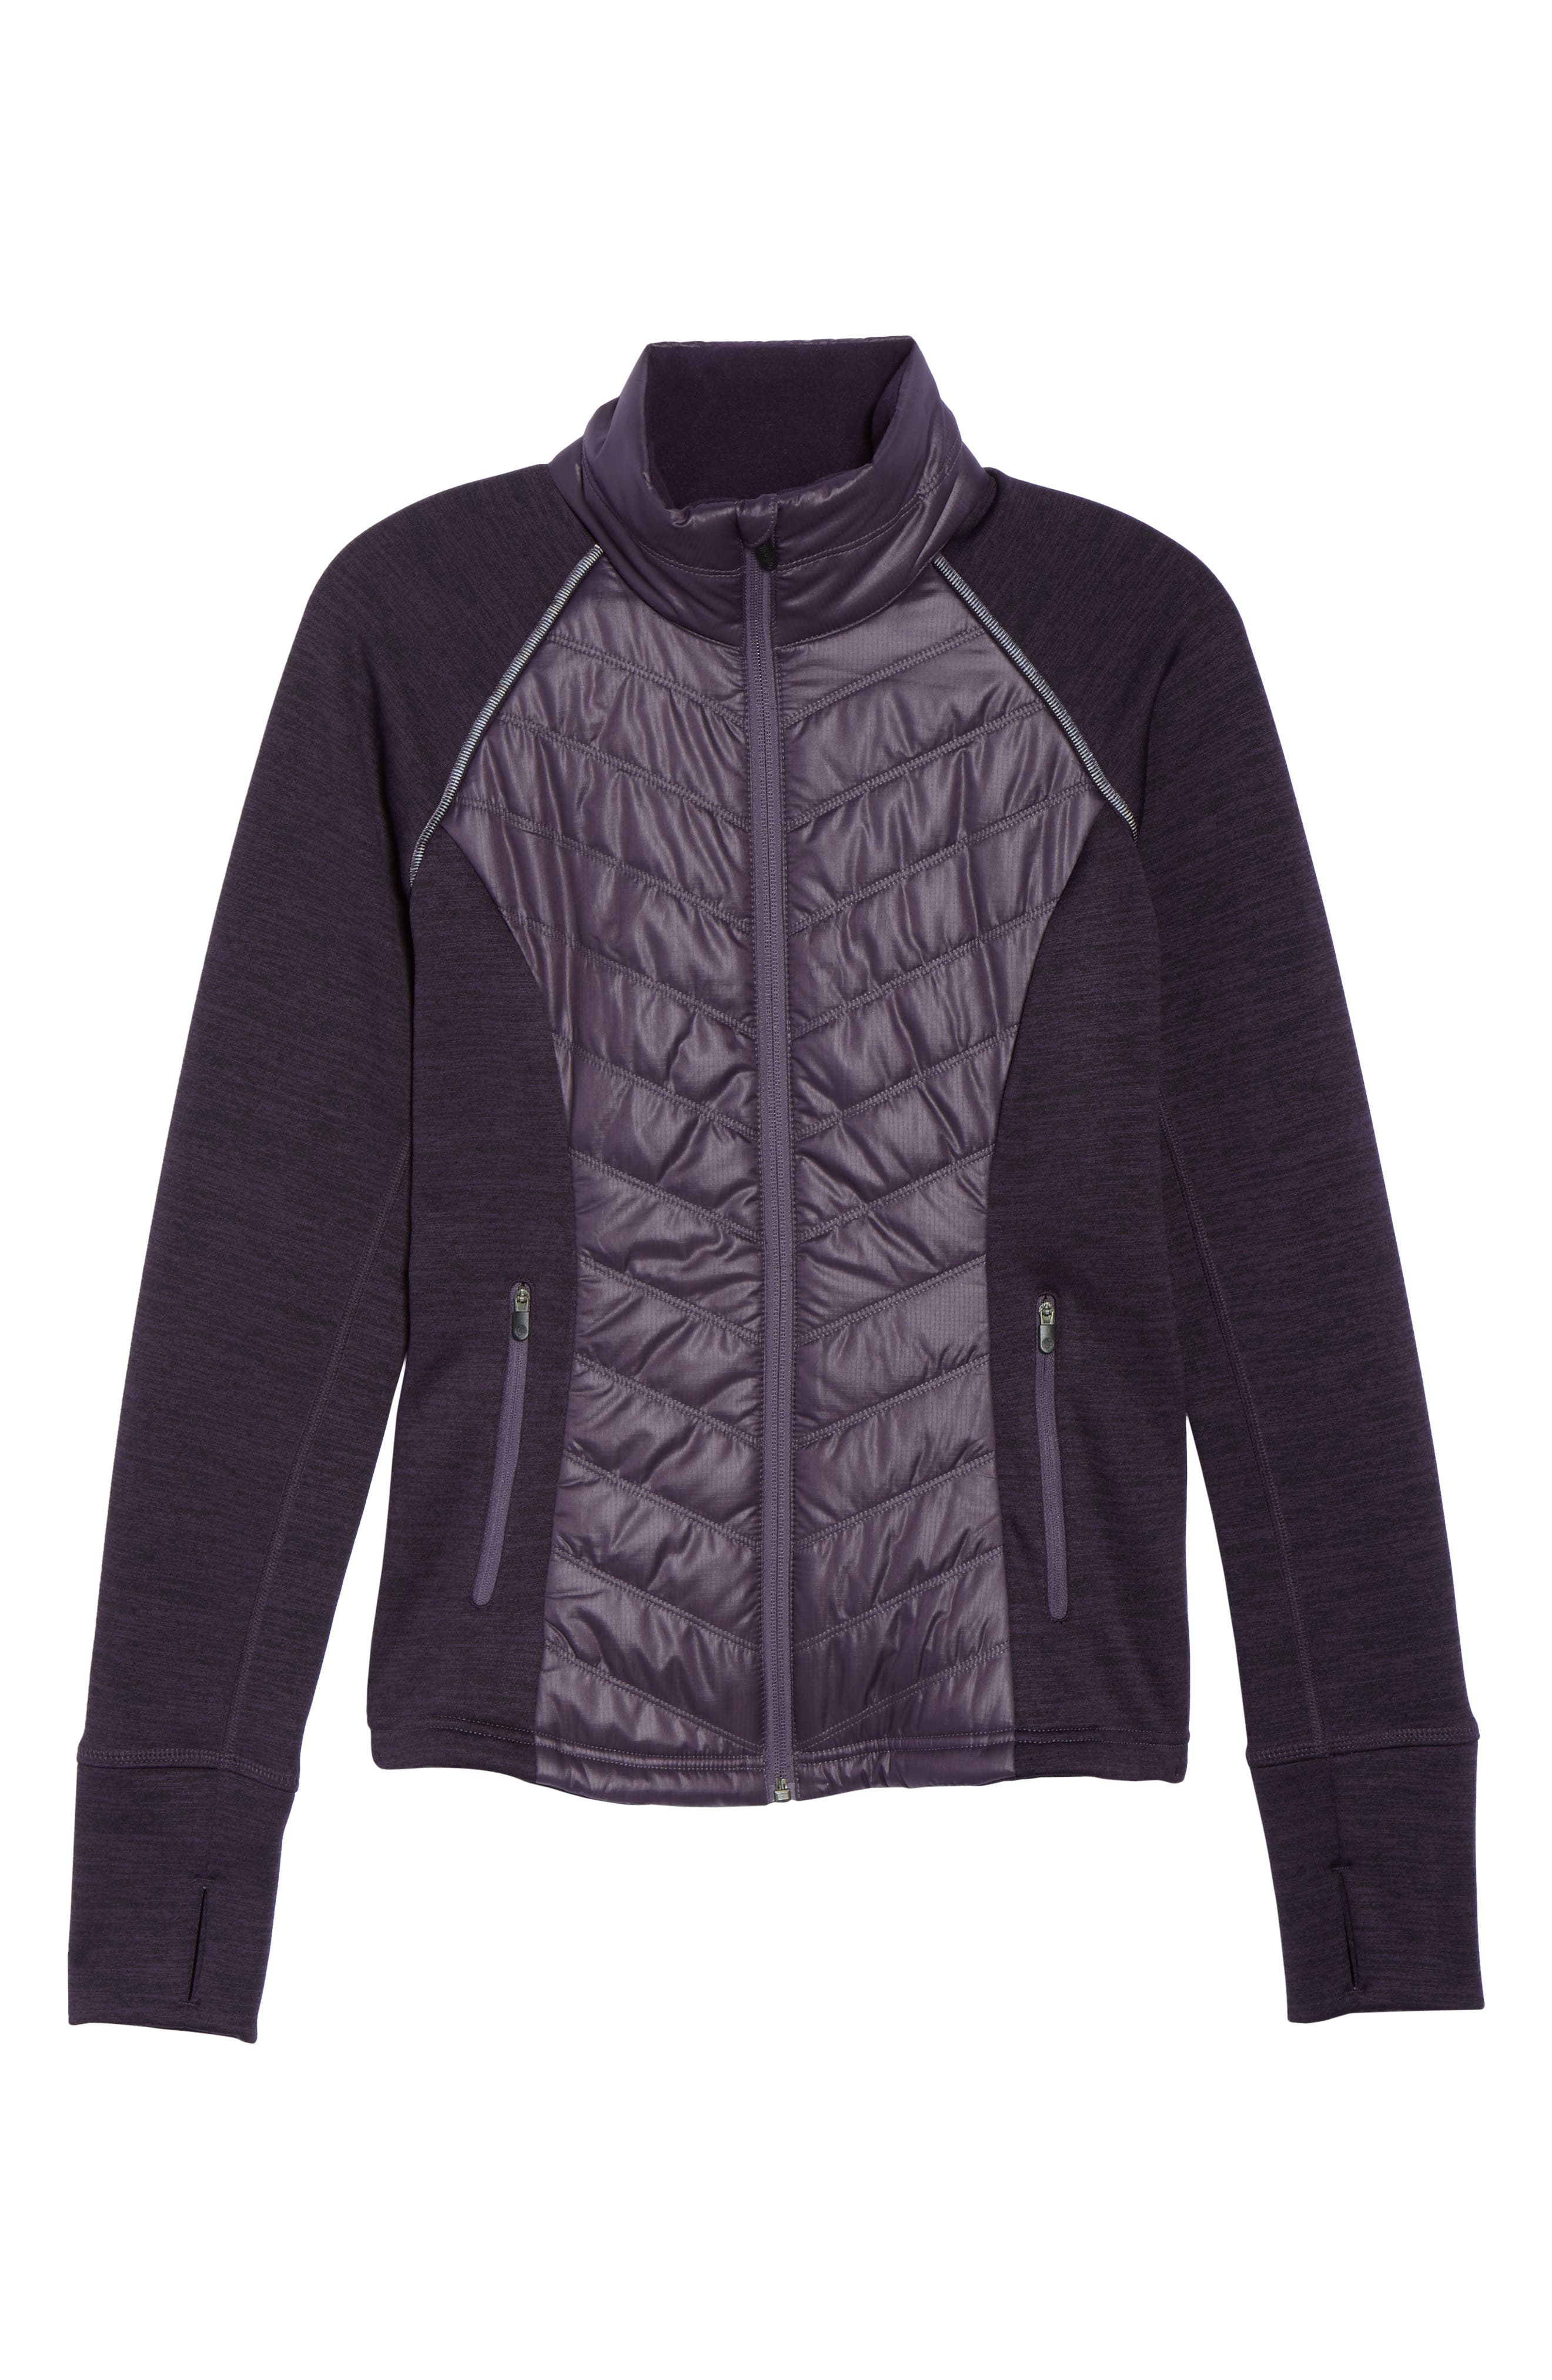 Zelfusion Reflective Quilted Jacket,                             Alternate thumbnail 38, color,